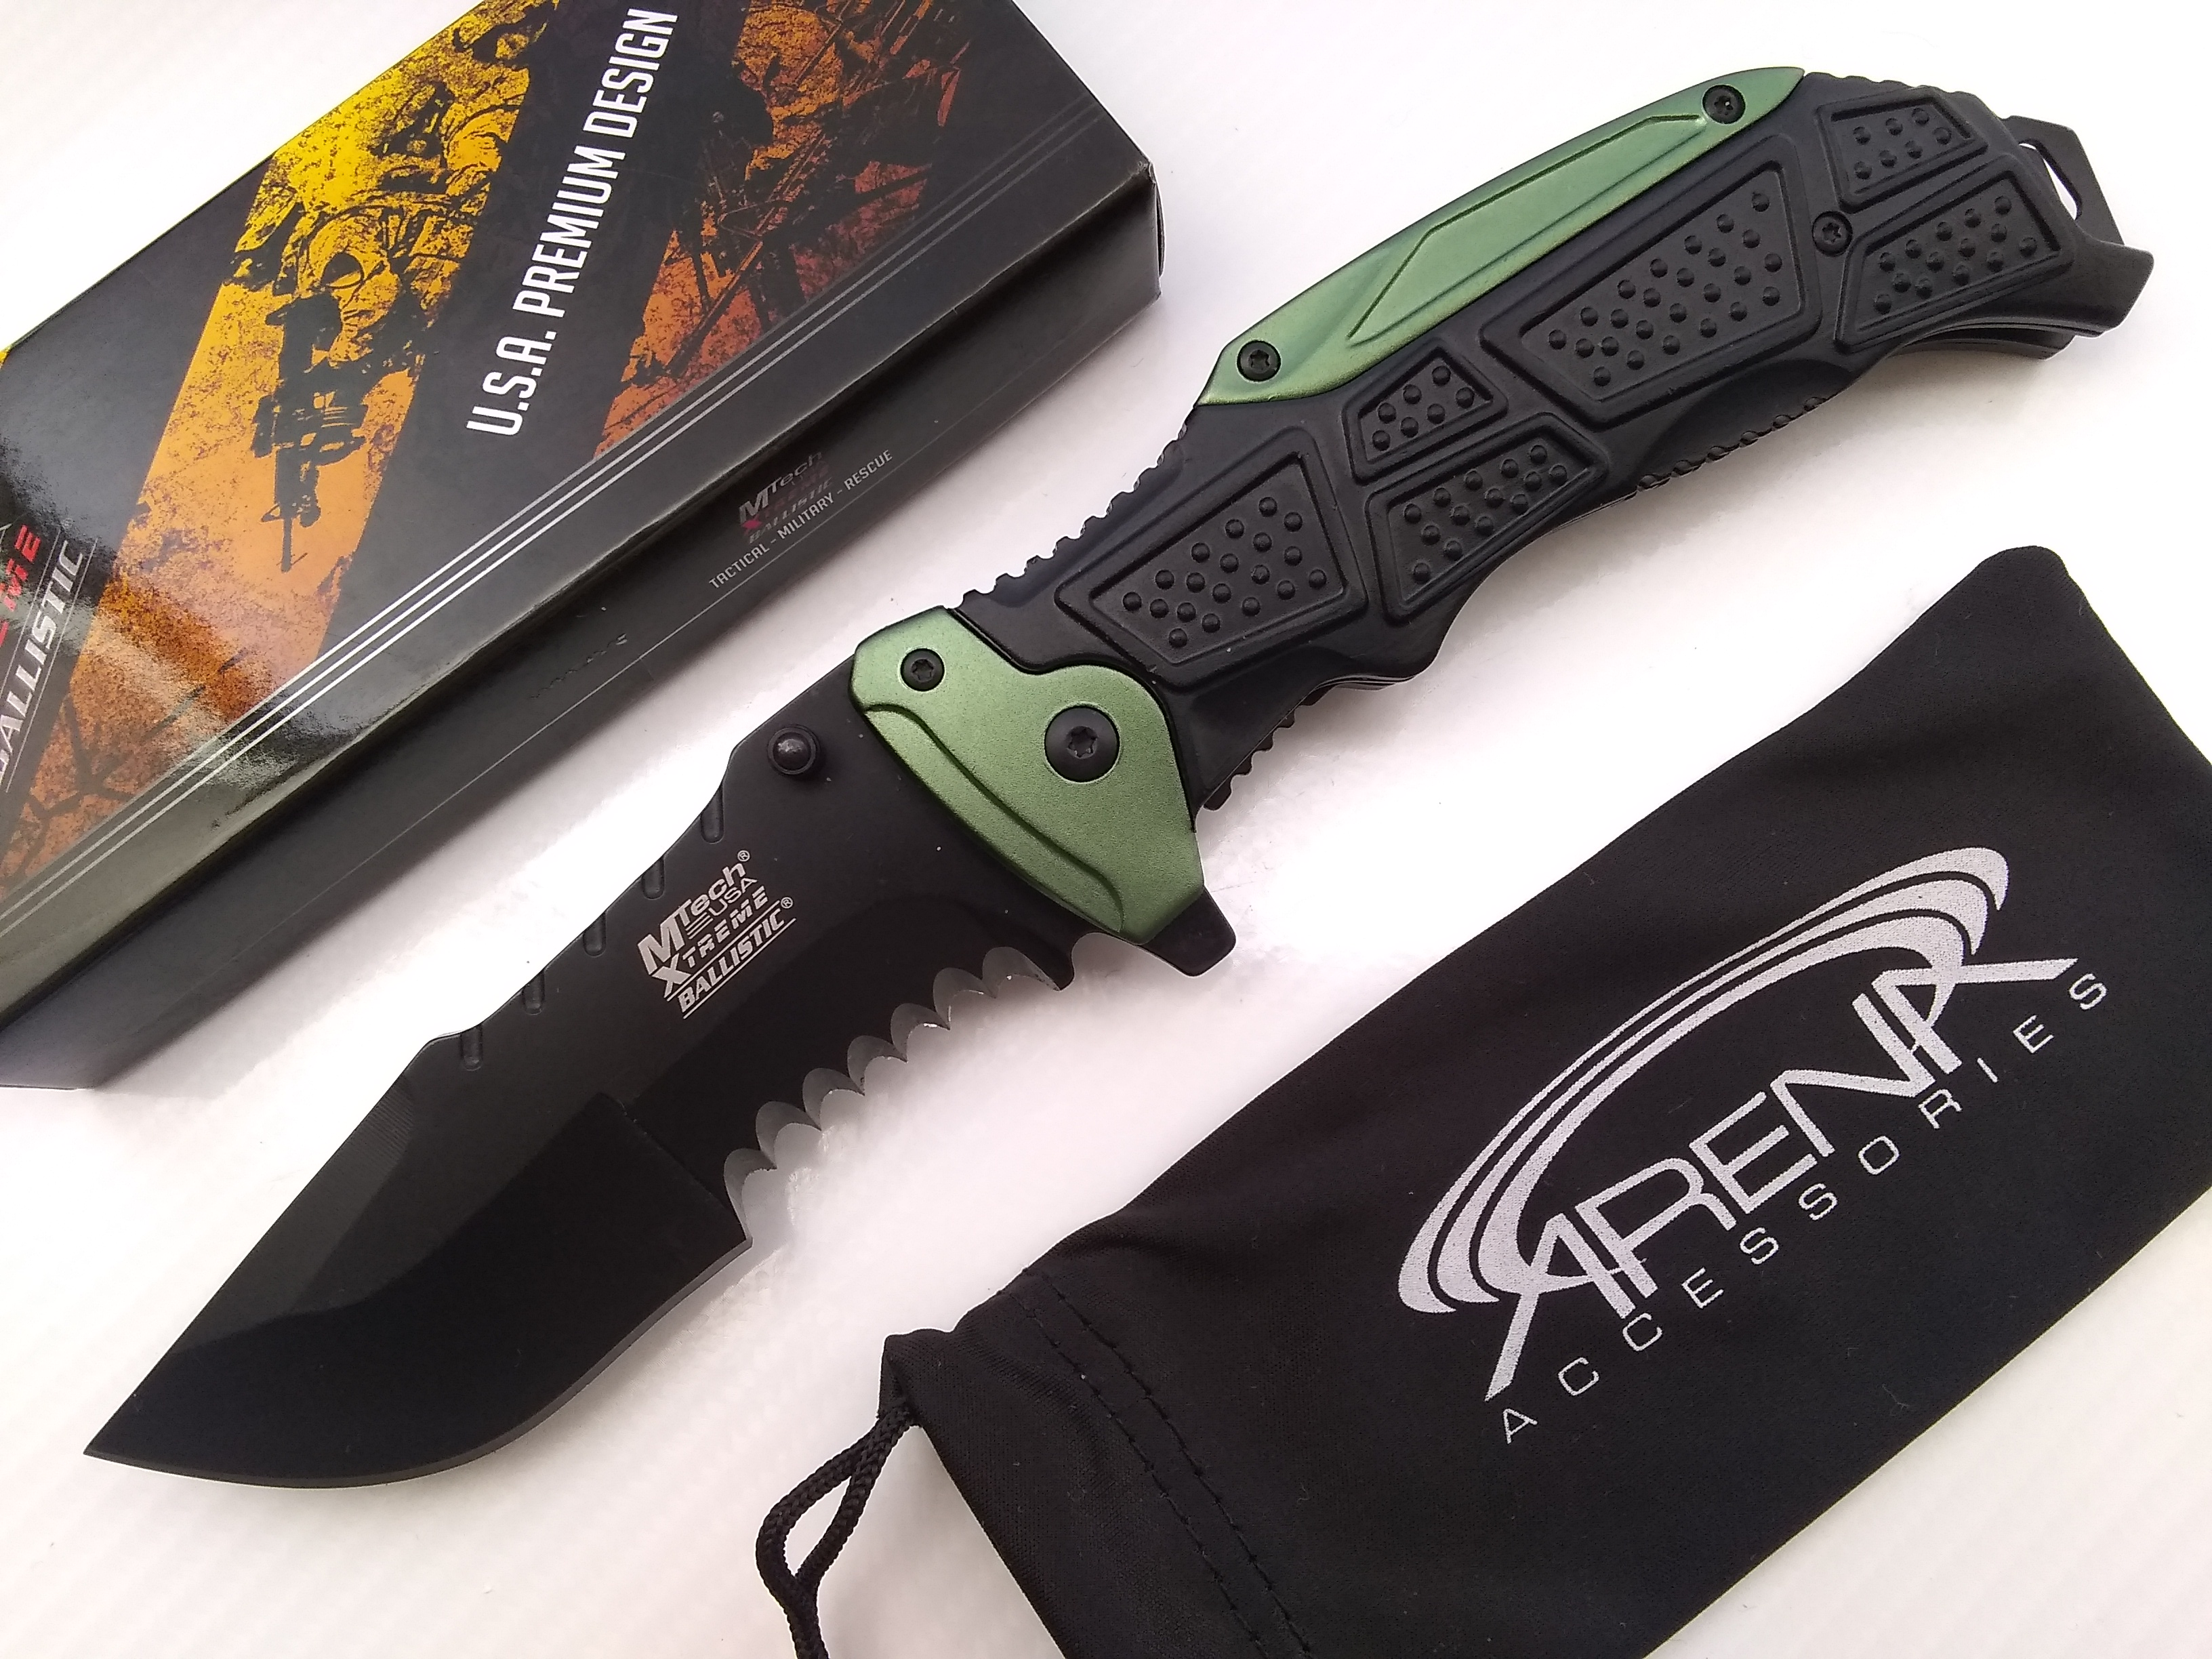 Huge Beastly Huntsman Blade Pocket Knife Spring Assisted Counter-Strike CSGO / Call of Duty Ghosts Style Blade